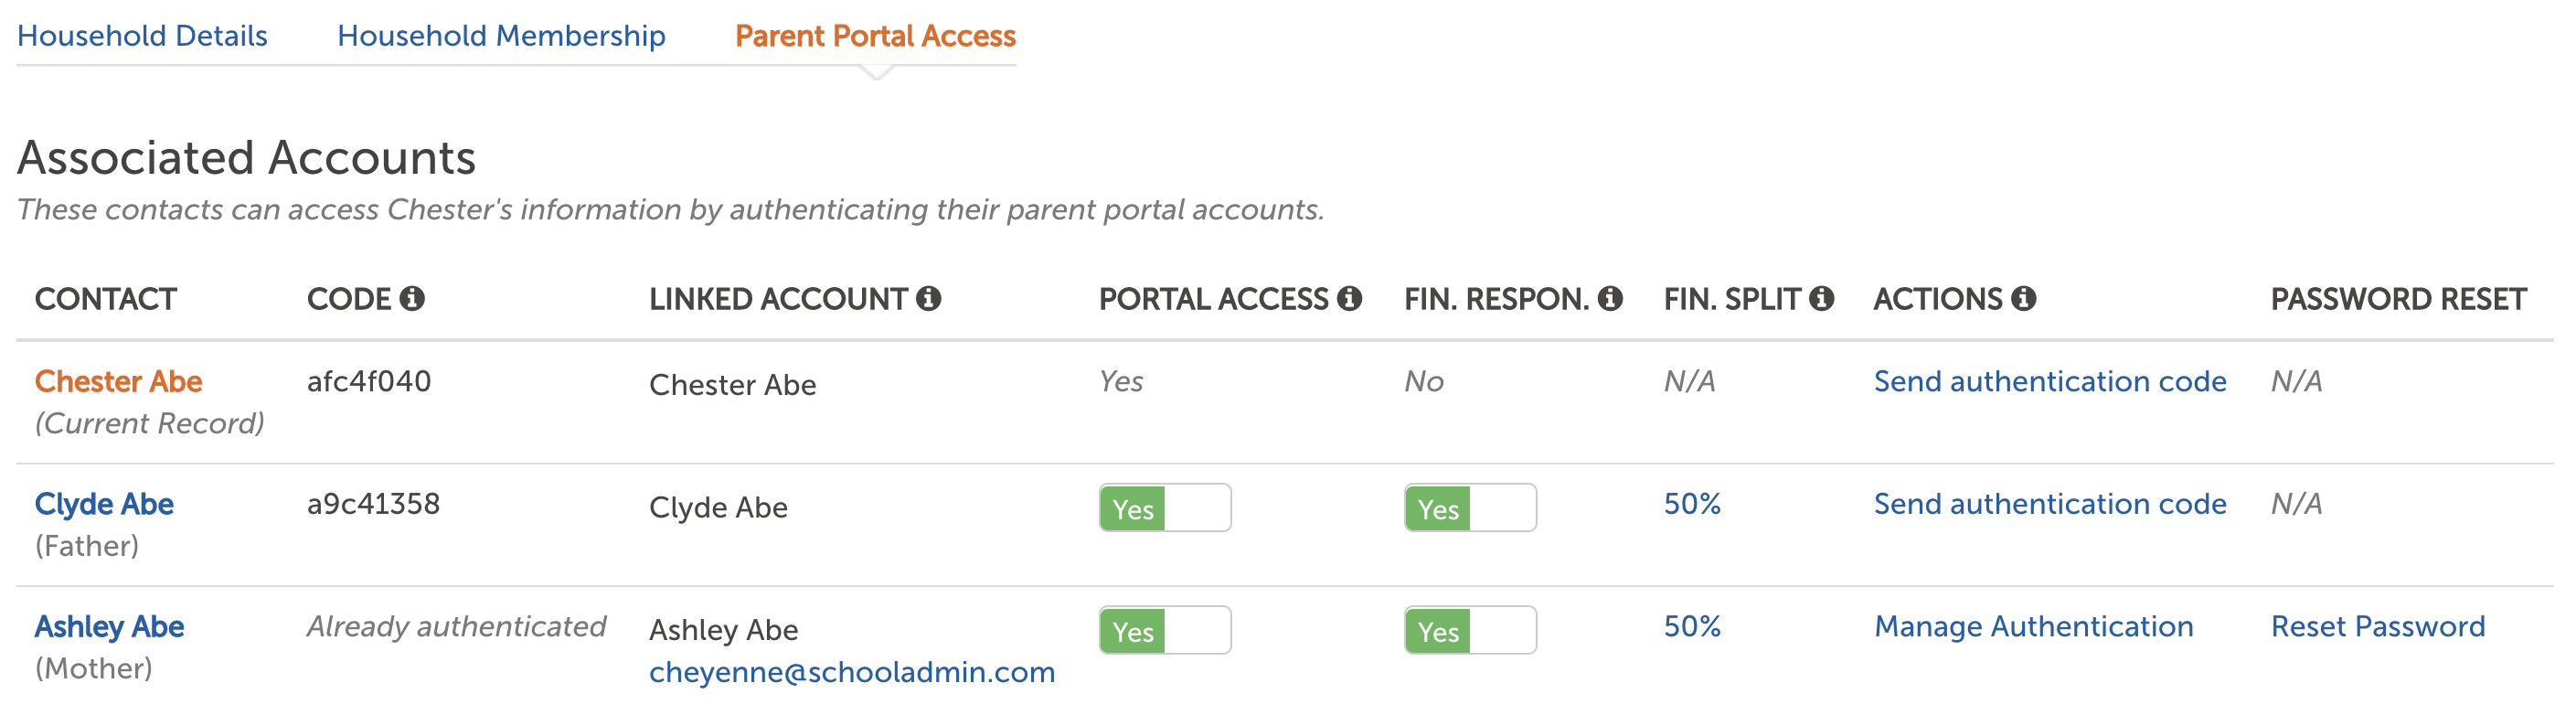 Image of the Parent Portal Access - Associated Accounts section of the contact record.